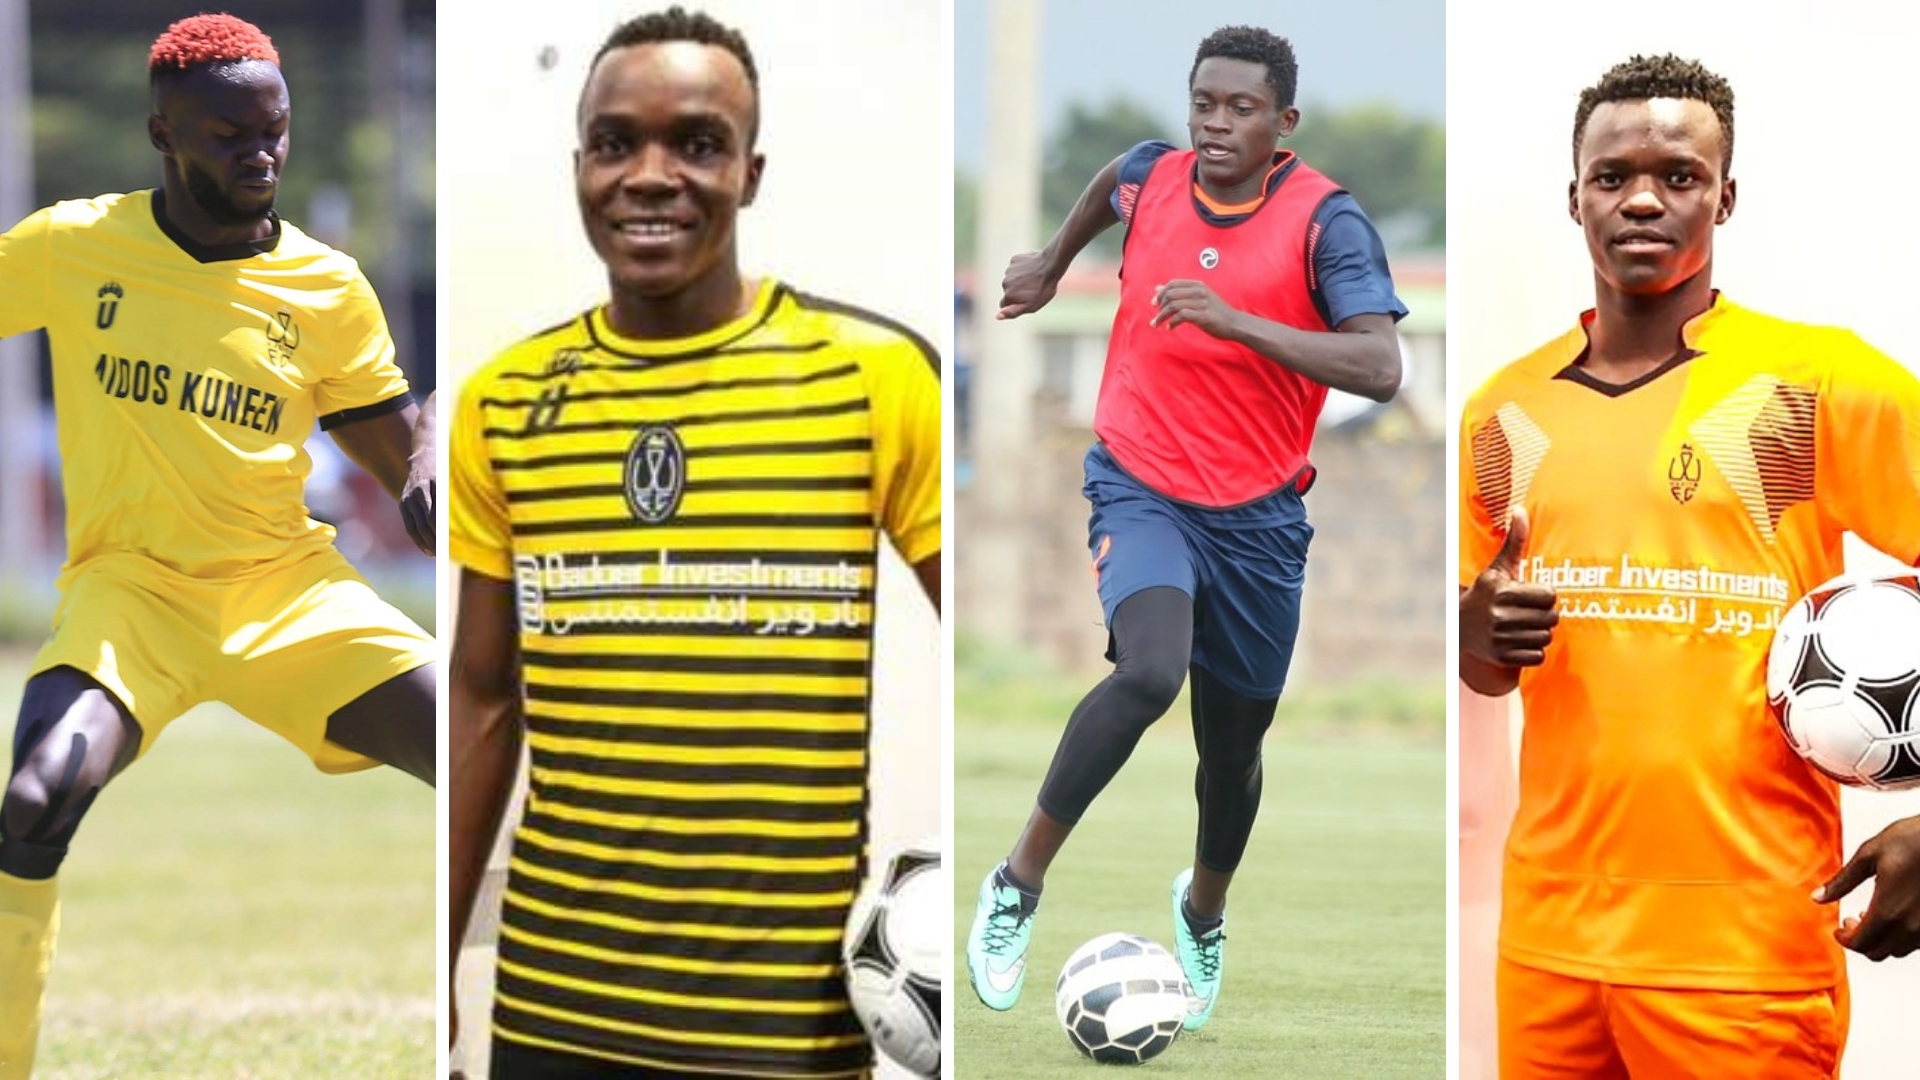 Wazito FC swing the axe - Otanga, Mutamba, Ndinya among those released